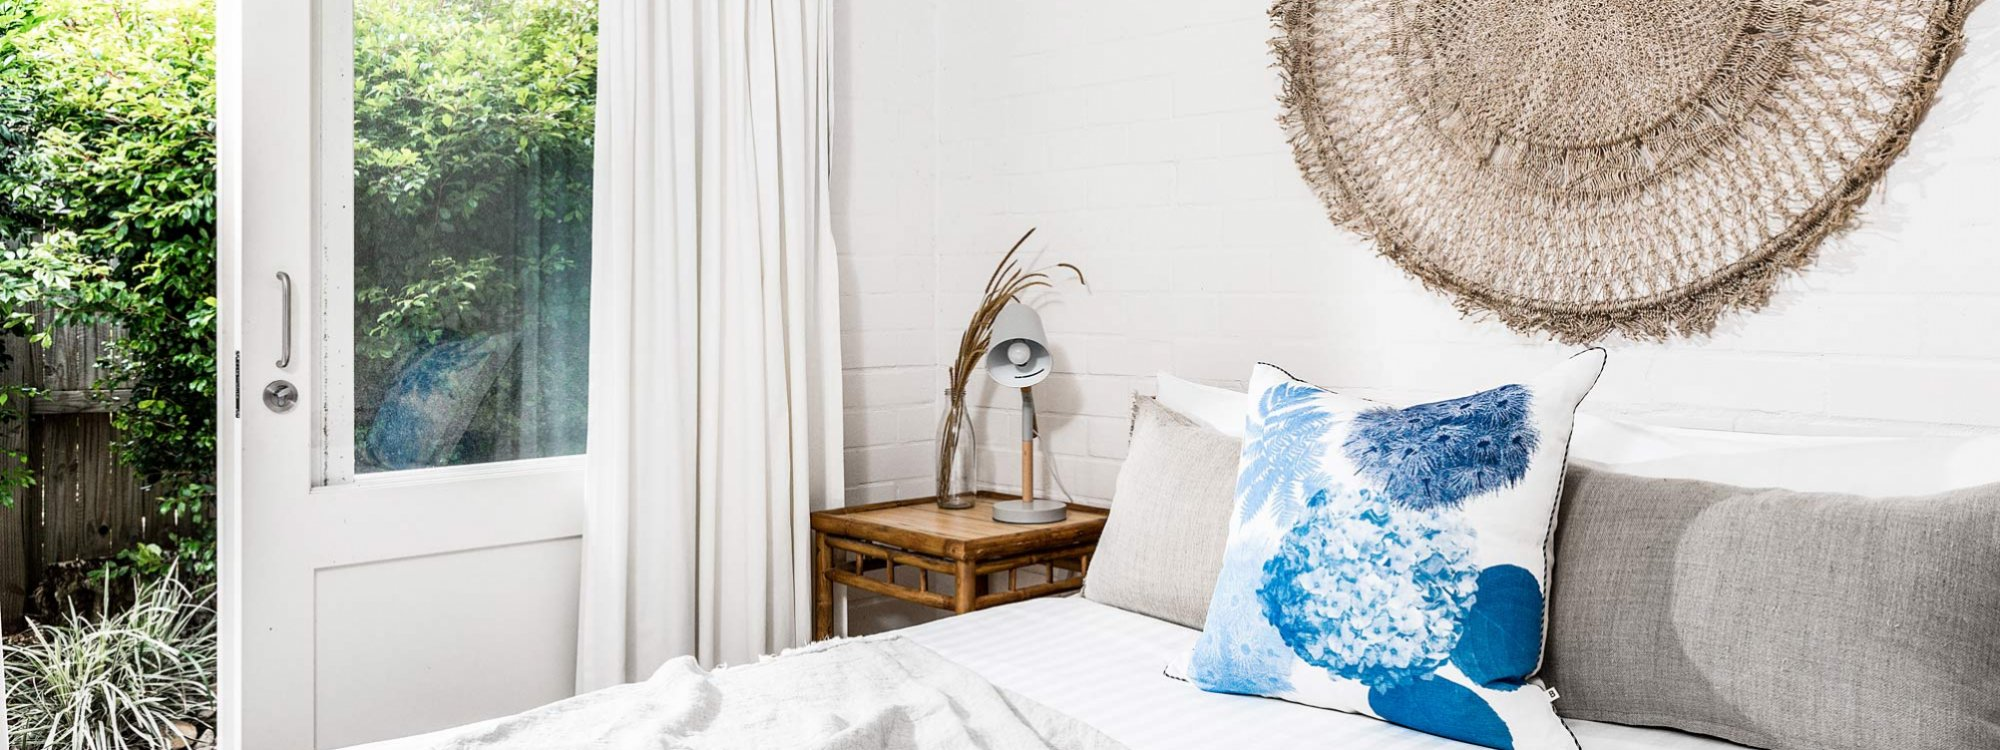 Beachwood - Byron Bay - Bedroom 2b